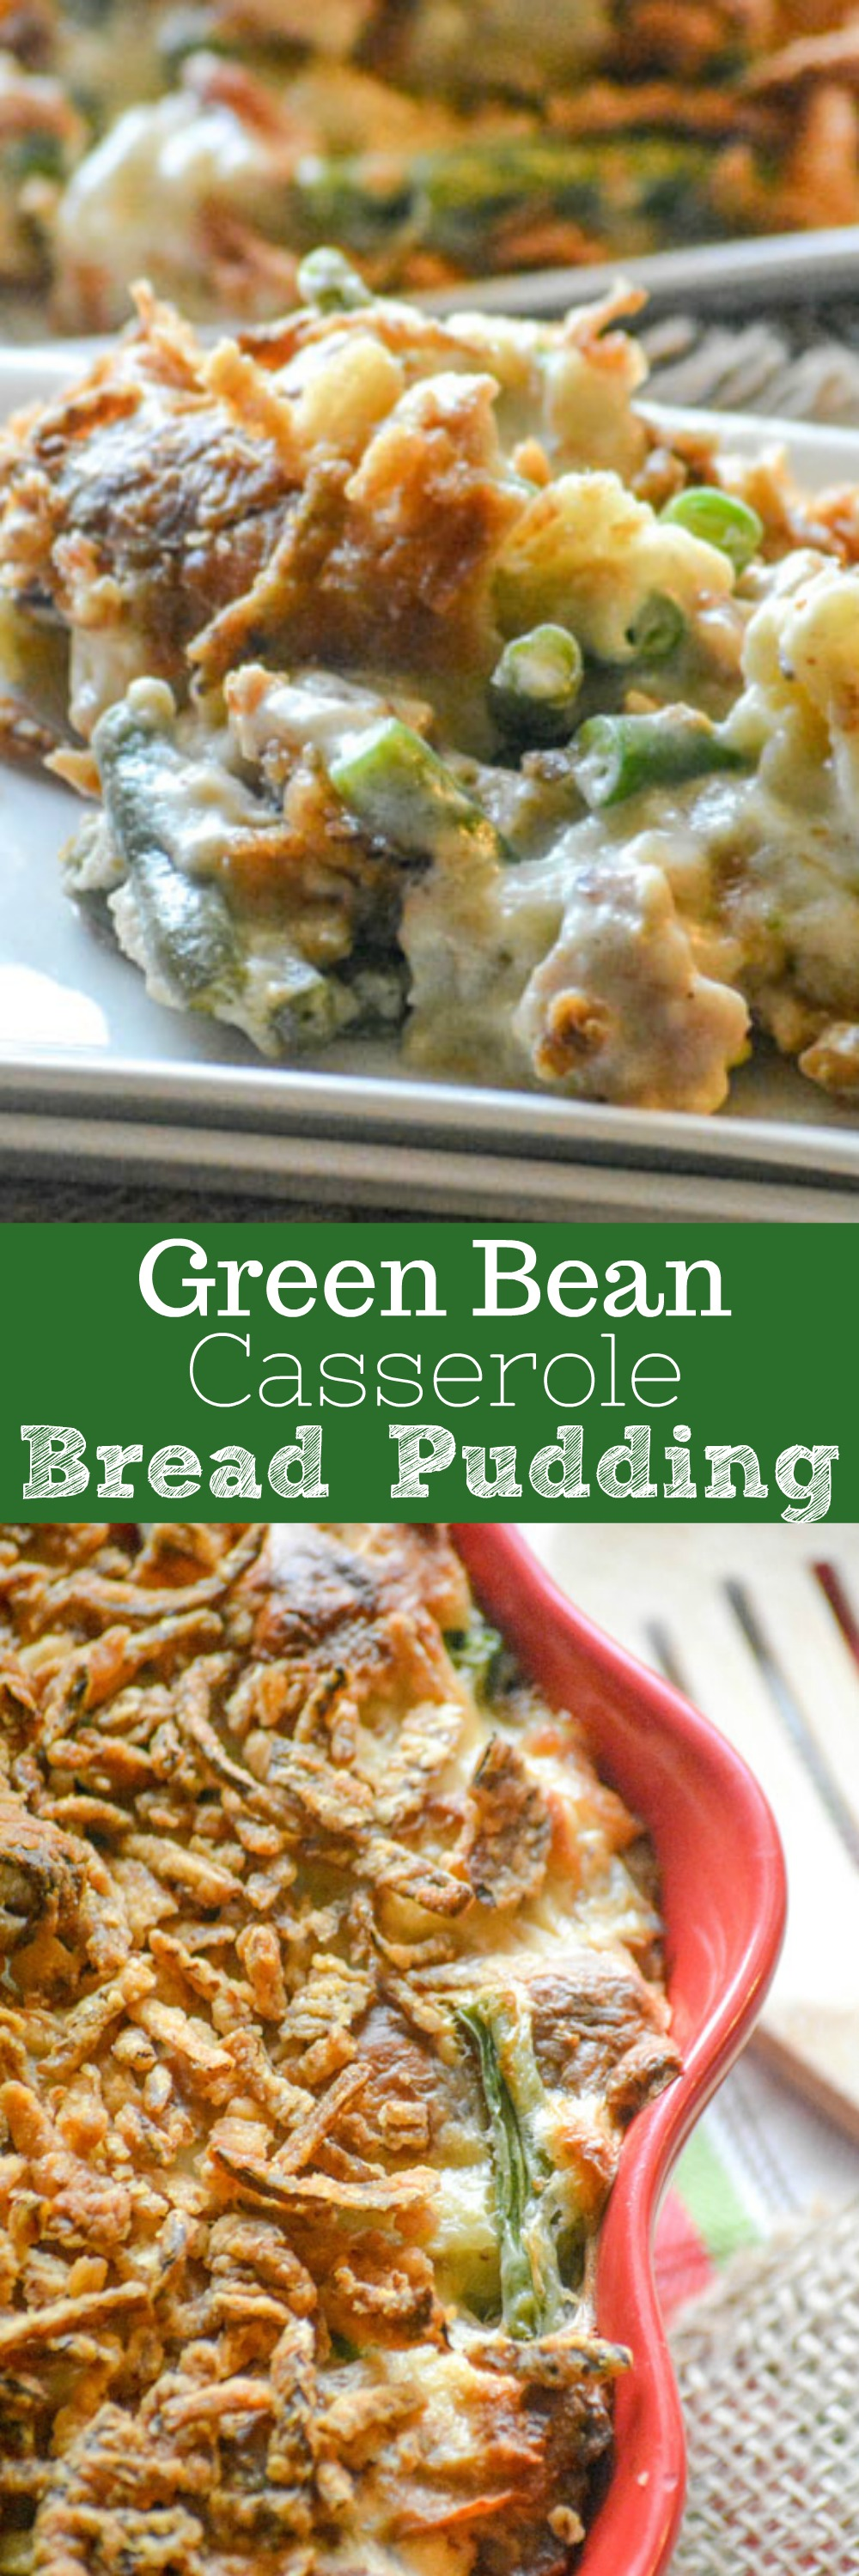 The holidays are coming, which means copious amounts of comfort foods & old family favorites. We've given this classic casserole a new look with our Green Bean Casserole Bread Pudding. It's great all by it's dang self, but paired with a turkey or ham it's the recipe for a perfect dinner.